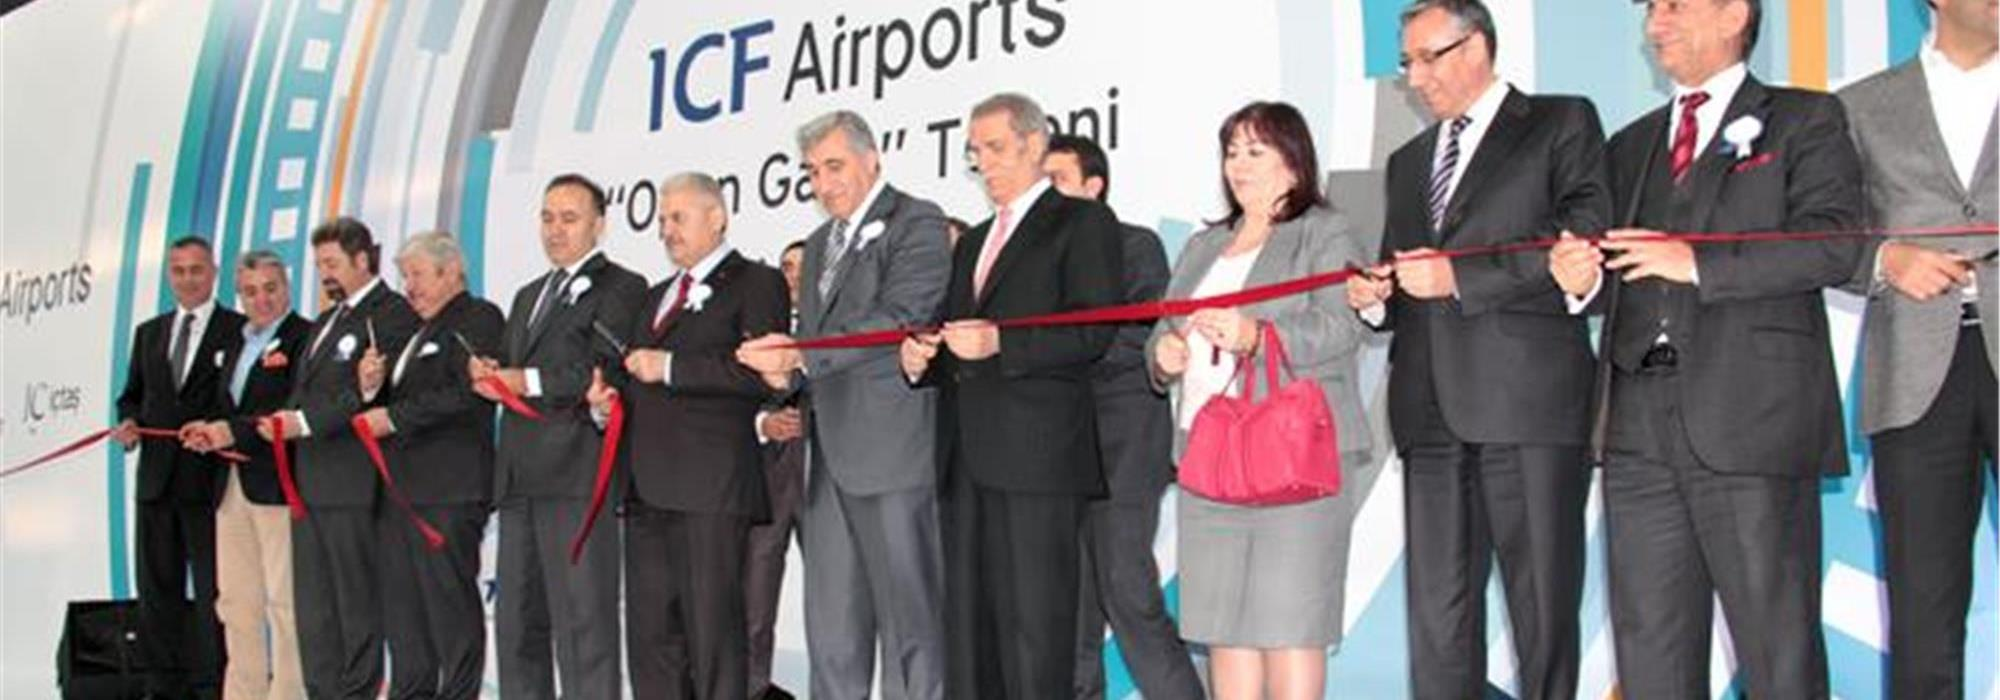 ICF AIRPORTS 'OPEN GATE' CEREMONY